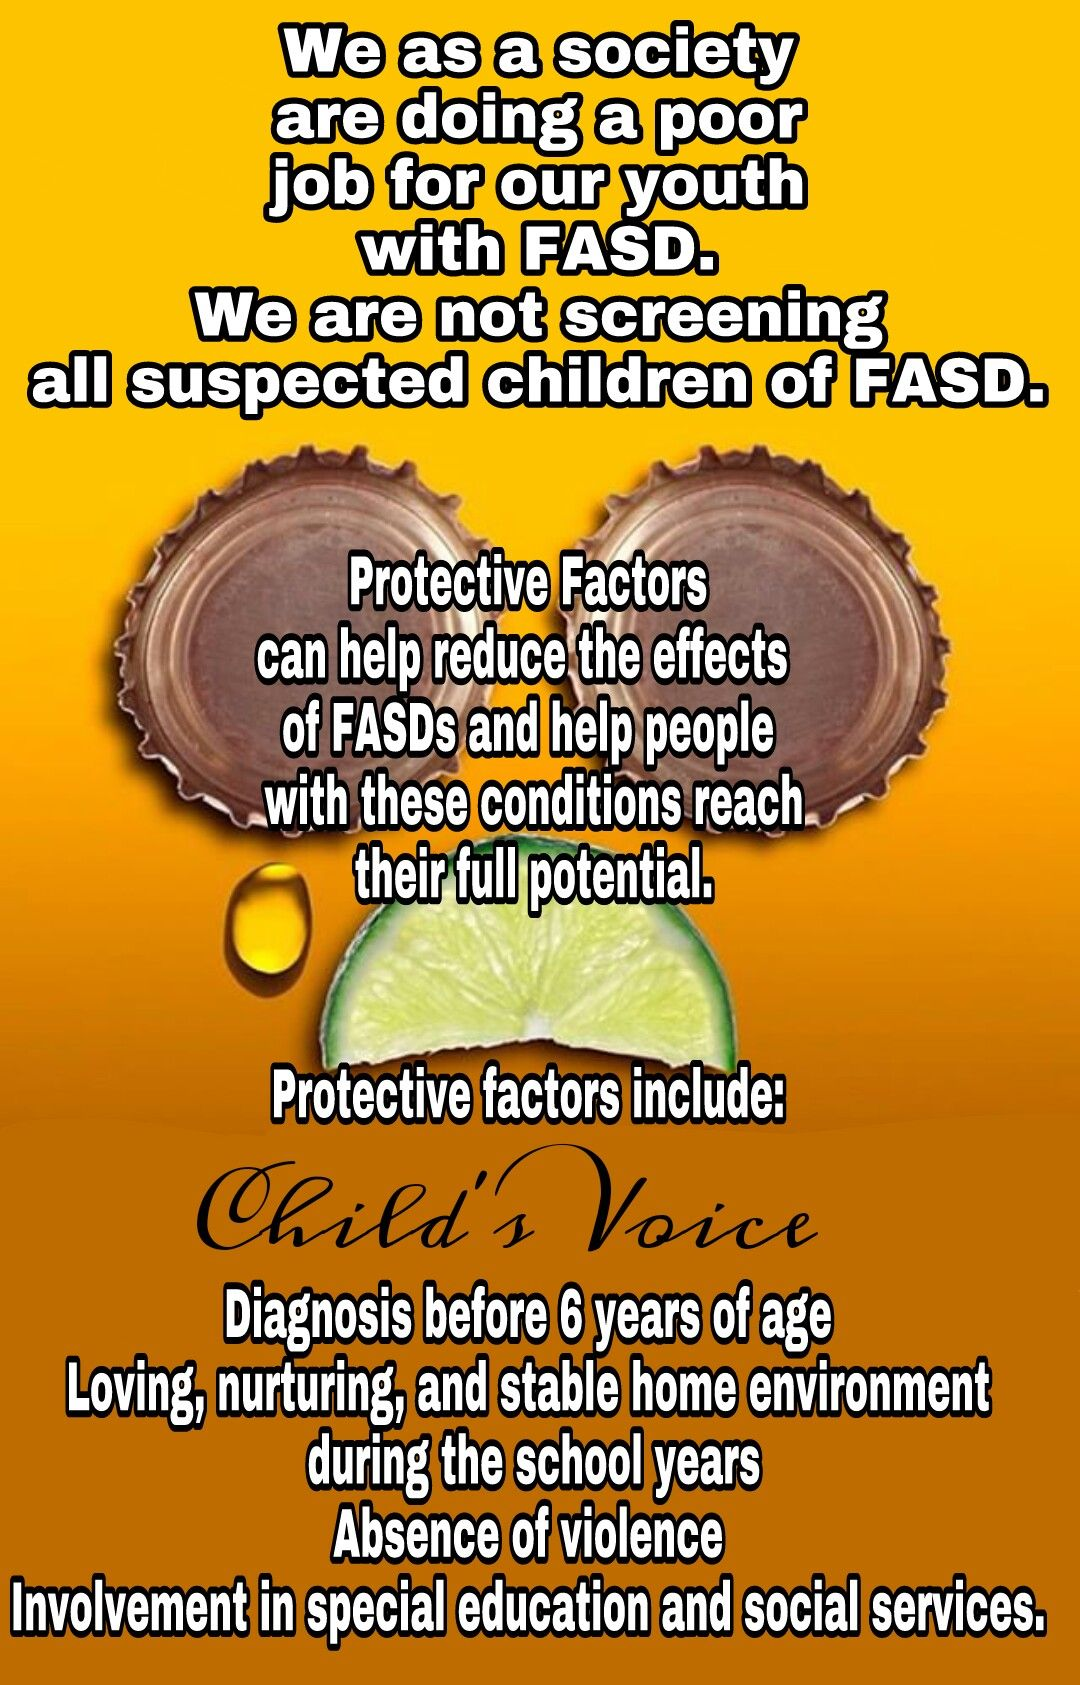 Pin by Child's Voice on FAS Awareness Helping people